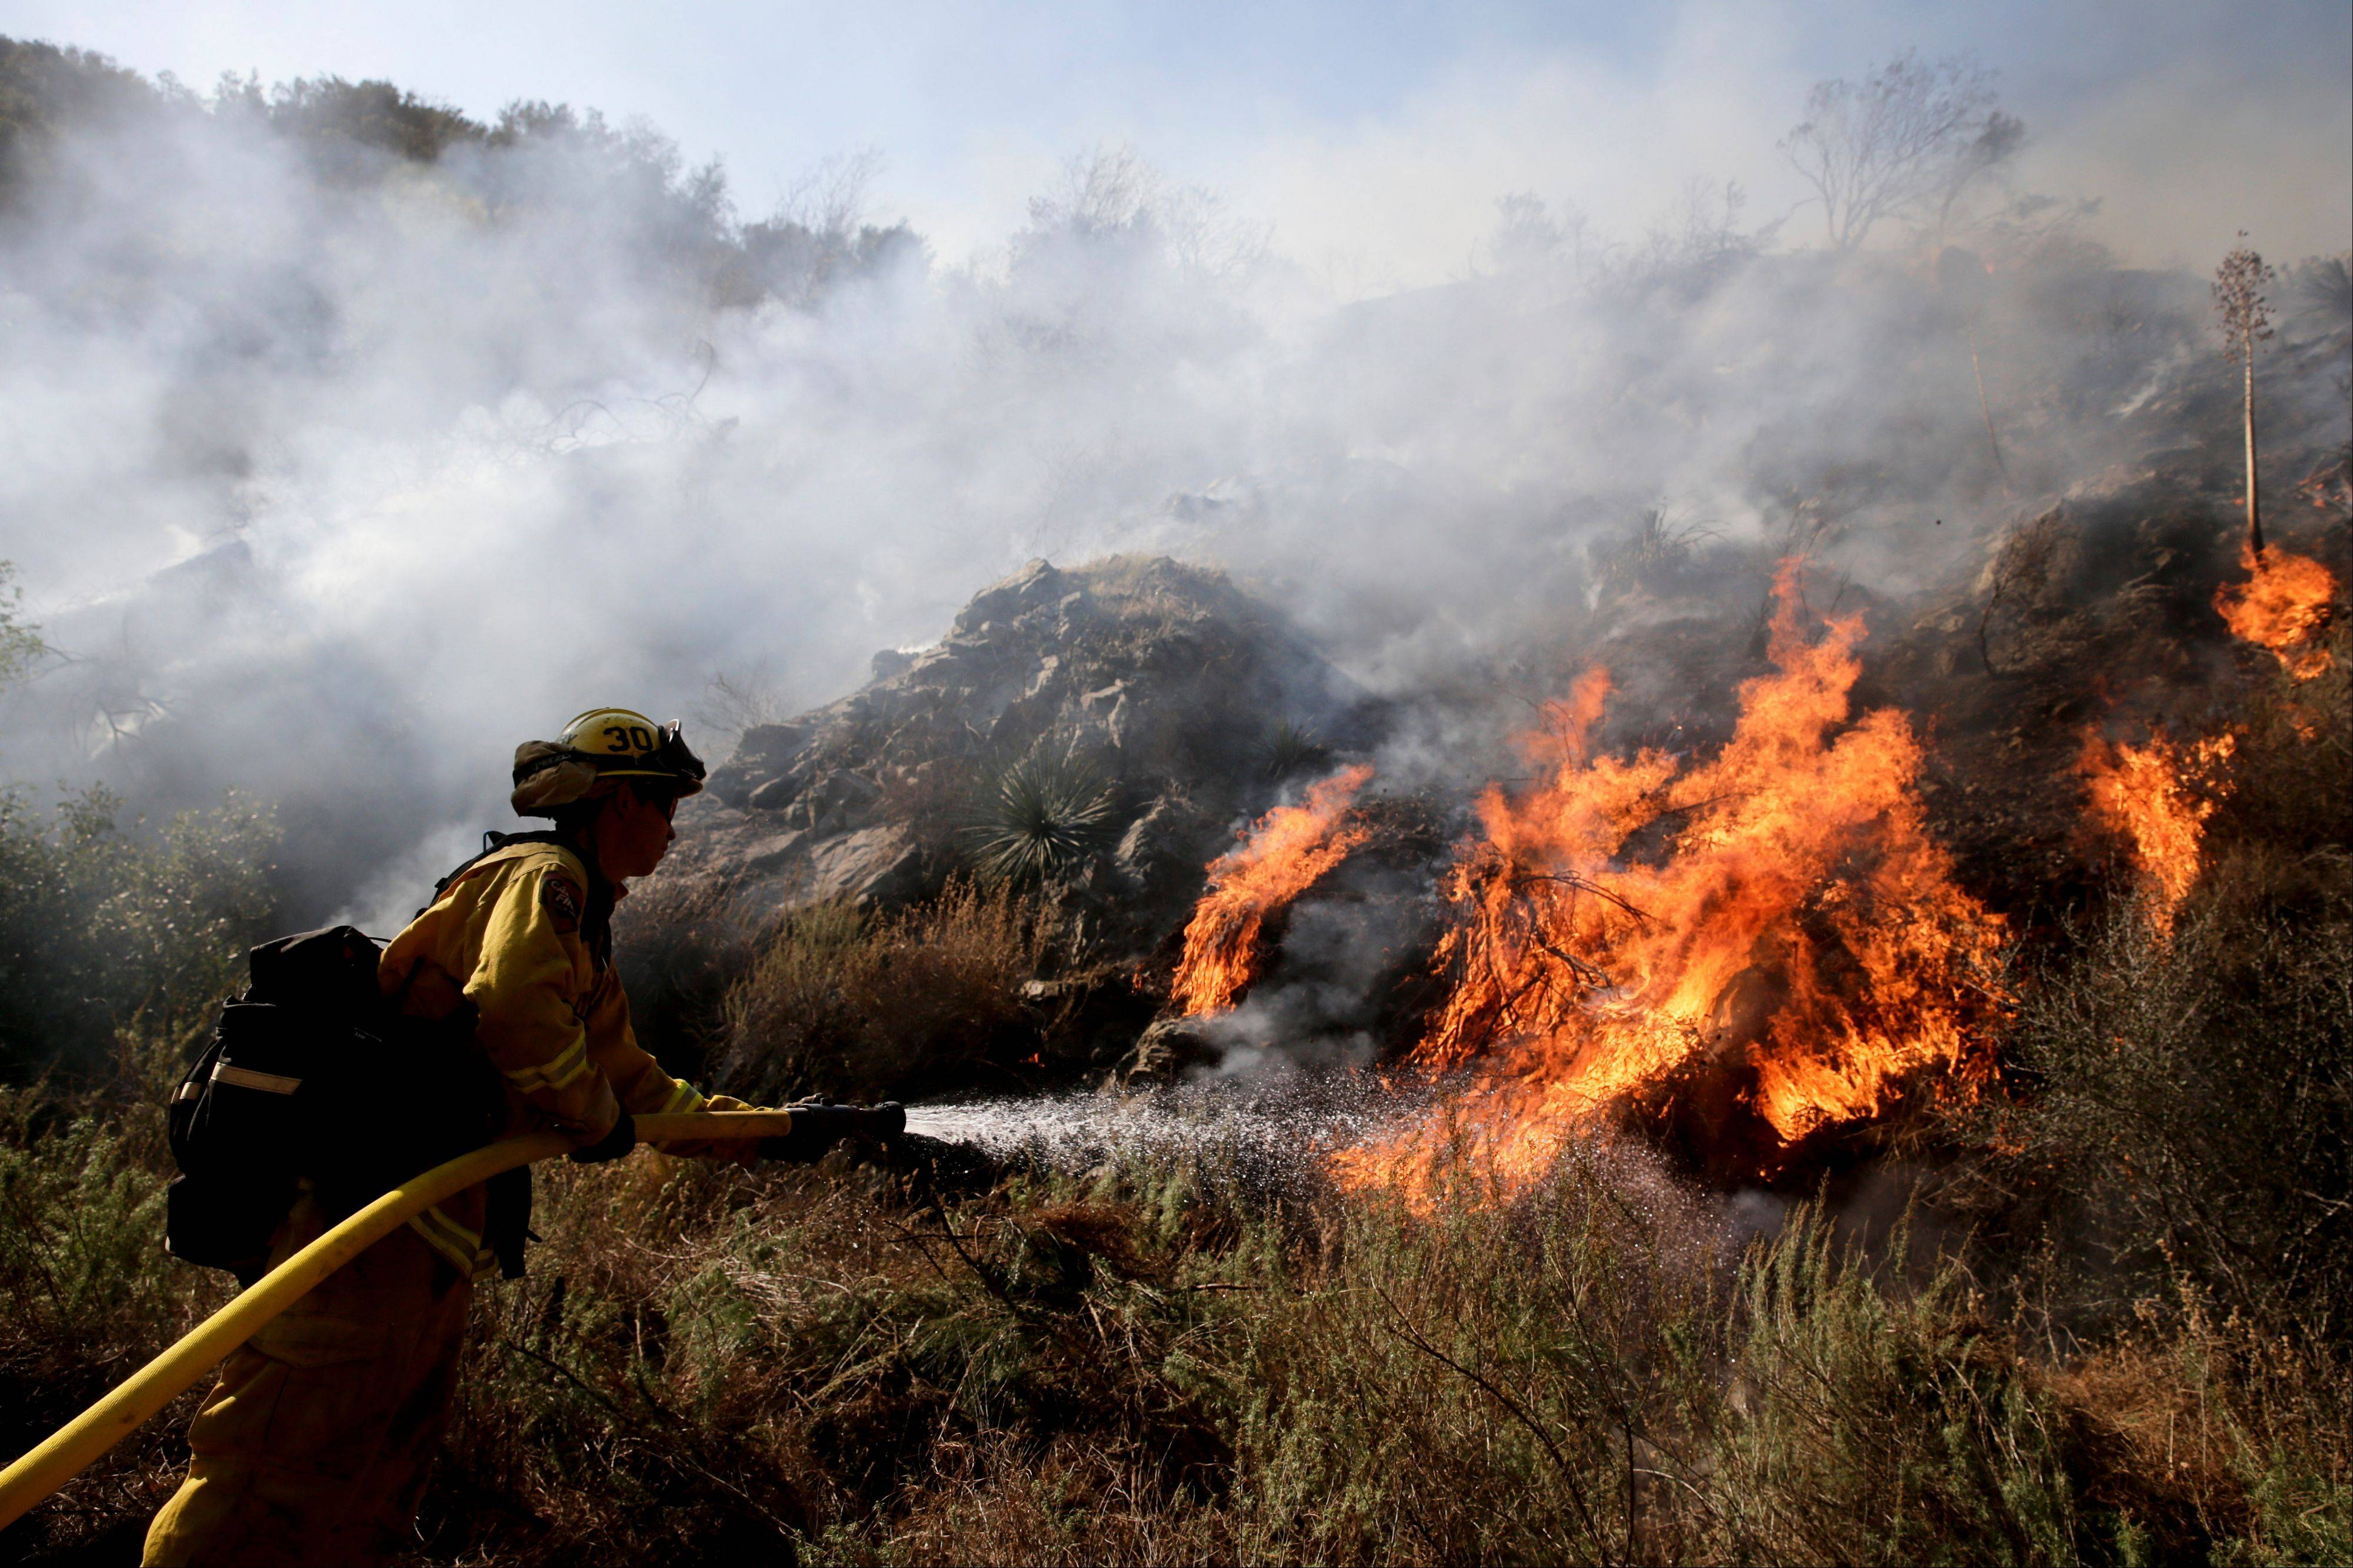 Firefighter Jeff Newby sprays water as he battles the Colby Fire on Friday near Azusa, Calif.